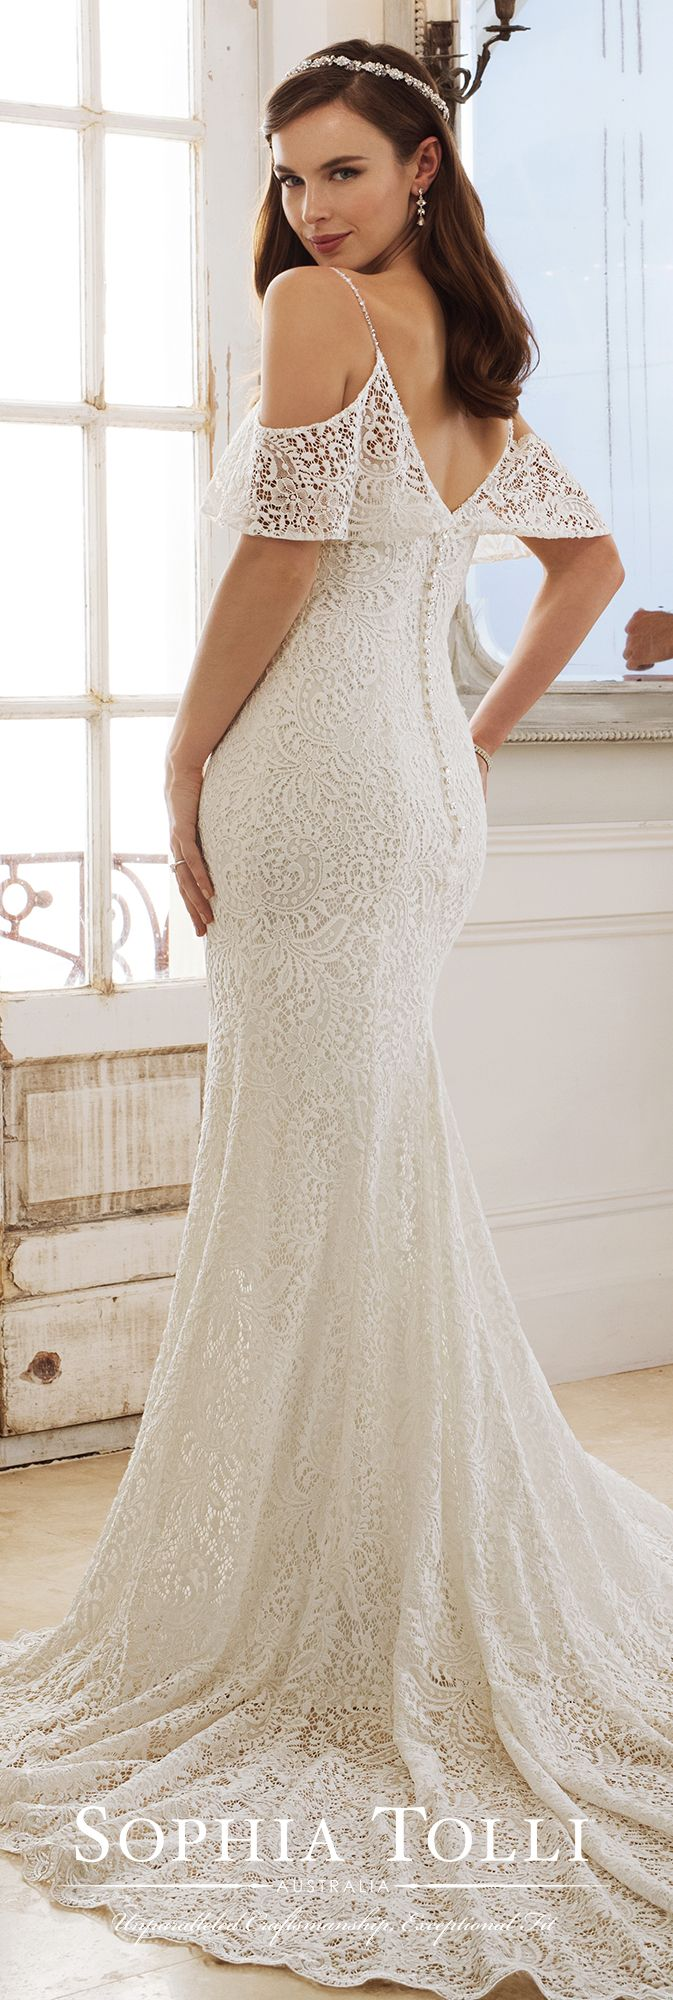 Sophia Tolli Y11875 Rhea - Fabulously on-trend, Rhea is a lace over stretch jersey sheath with a cold shoulder ruffled neckline, beaded spaghetti straps, princess line lace trim, a V-back finished with a zipper trimmed with diamante buttons, a scalloped lace hem and a chapel train.